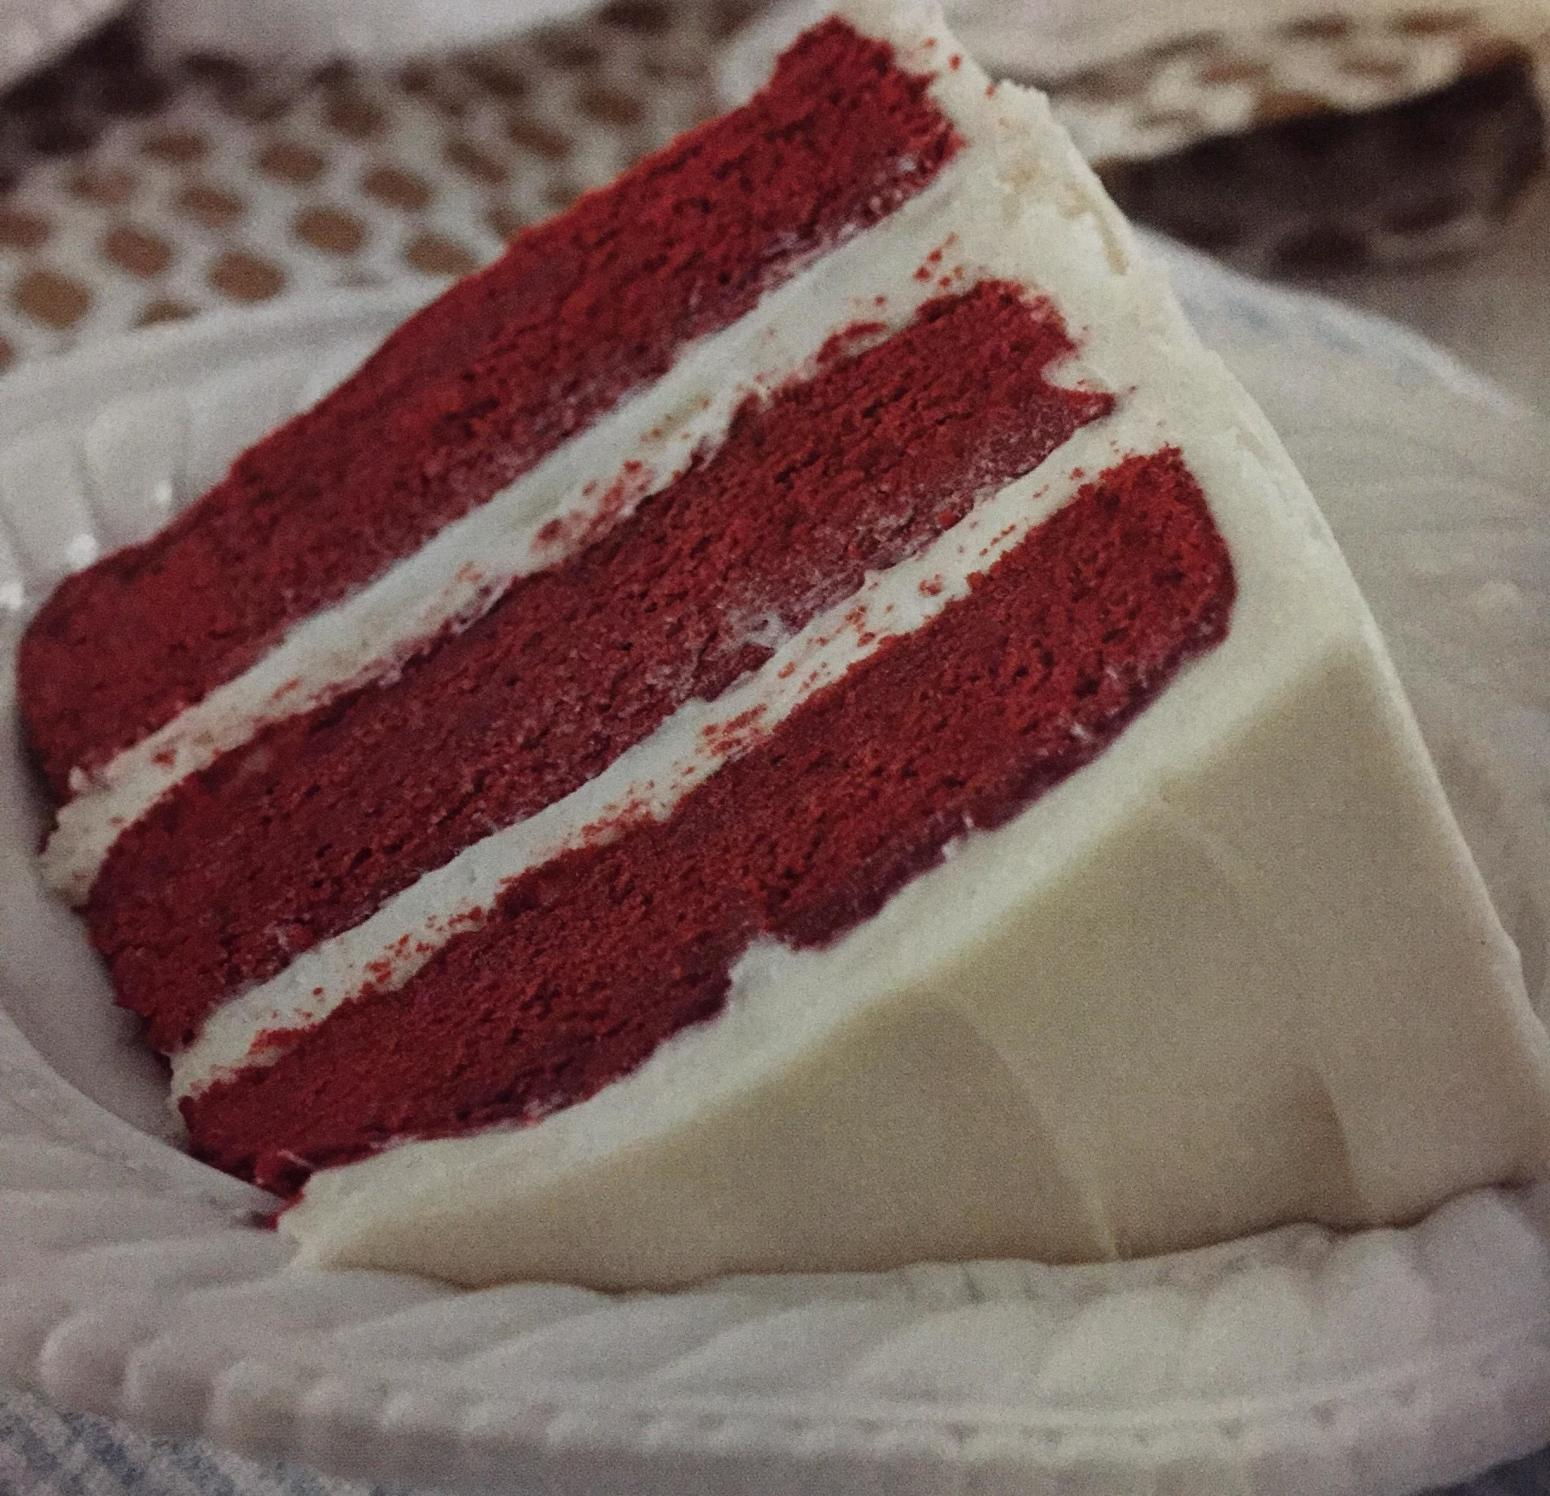 Old Fashioned Red Velvet Cake Icing Recipe